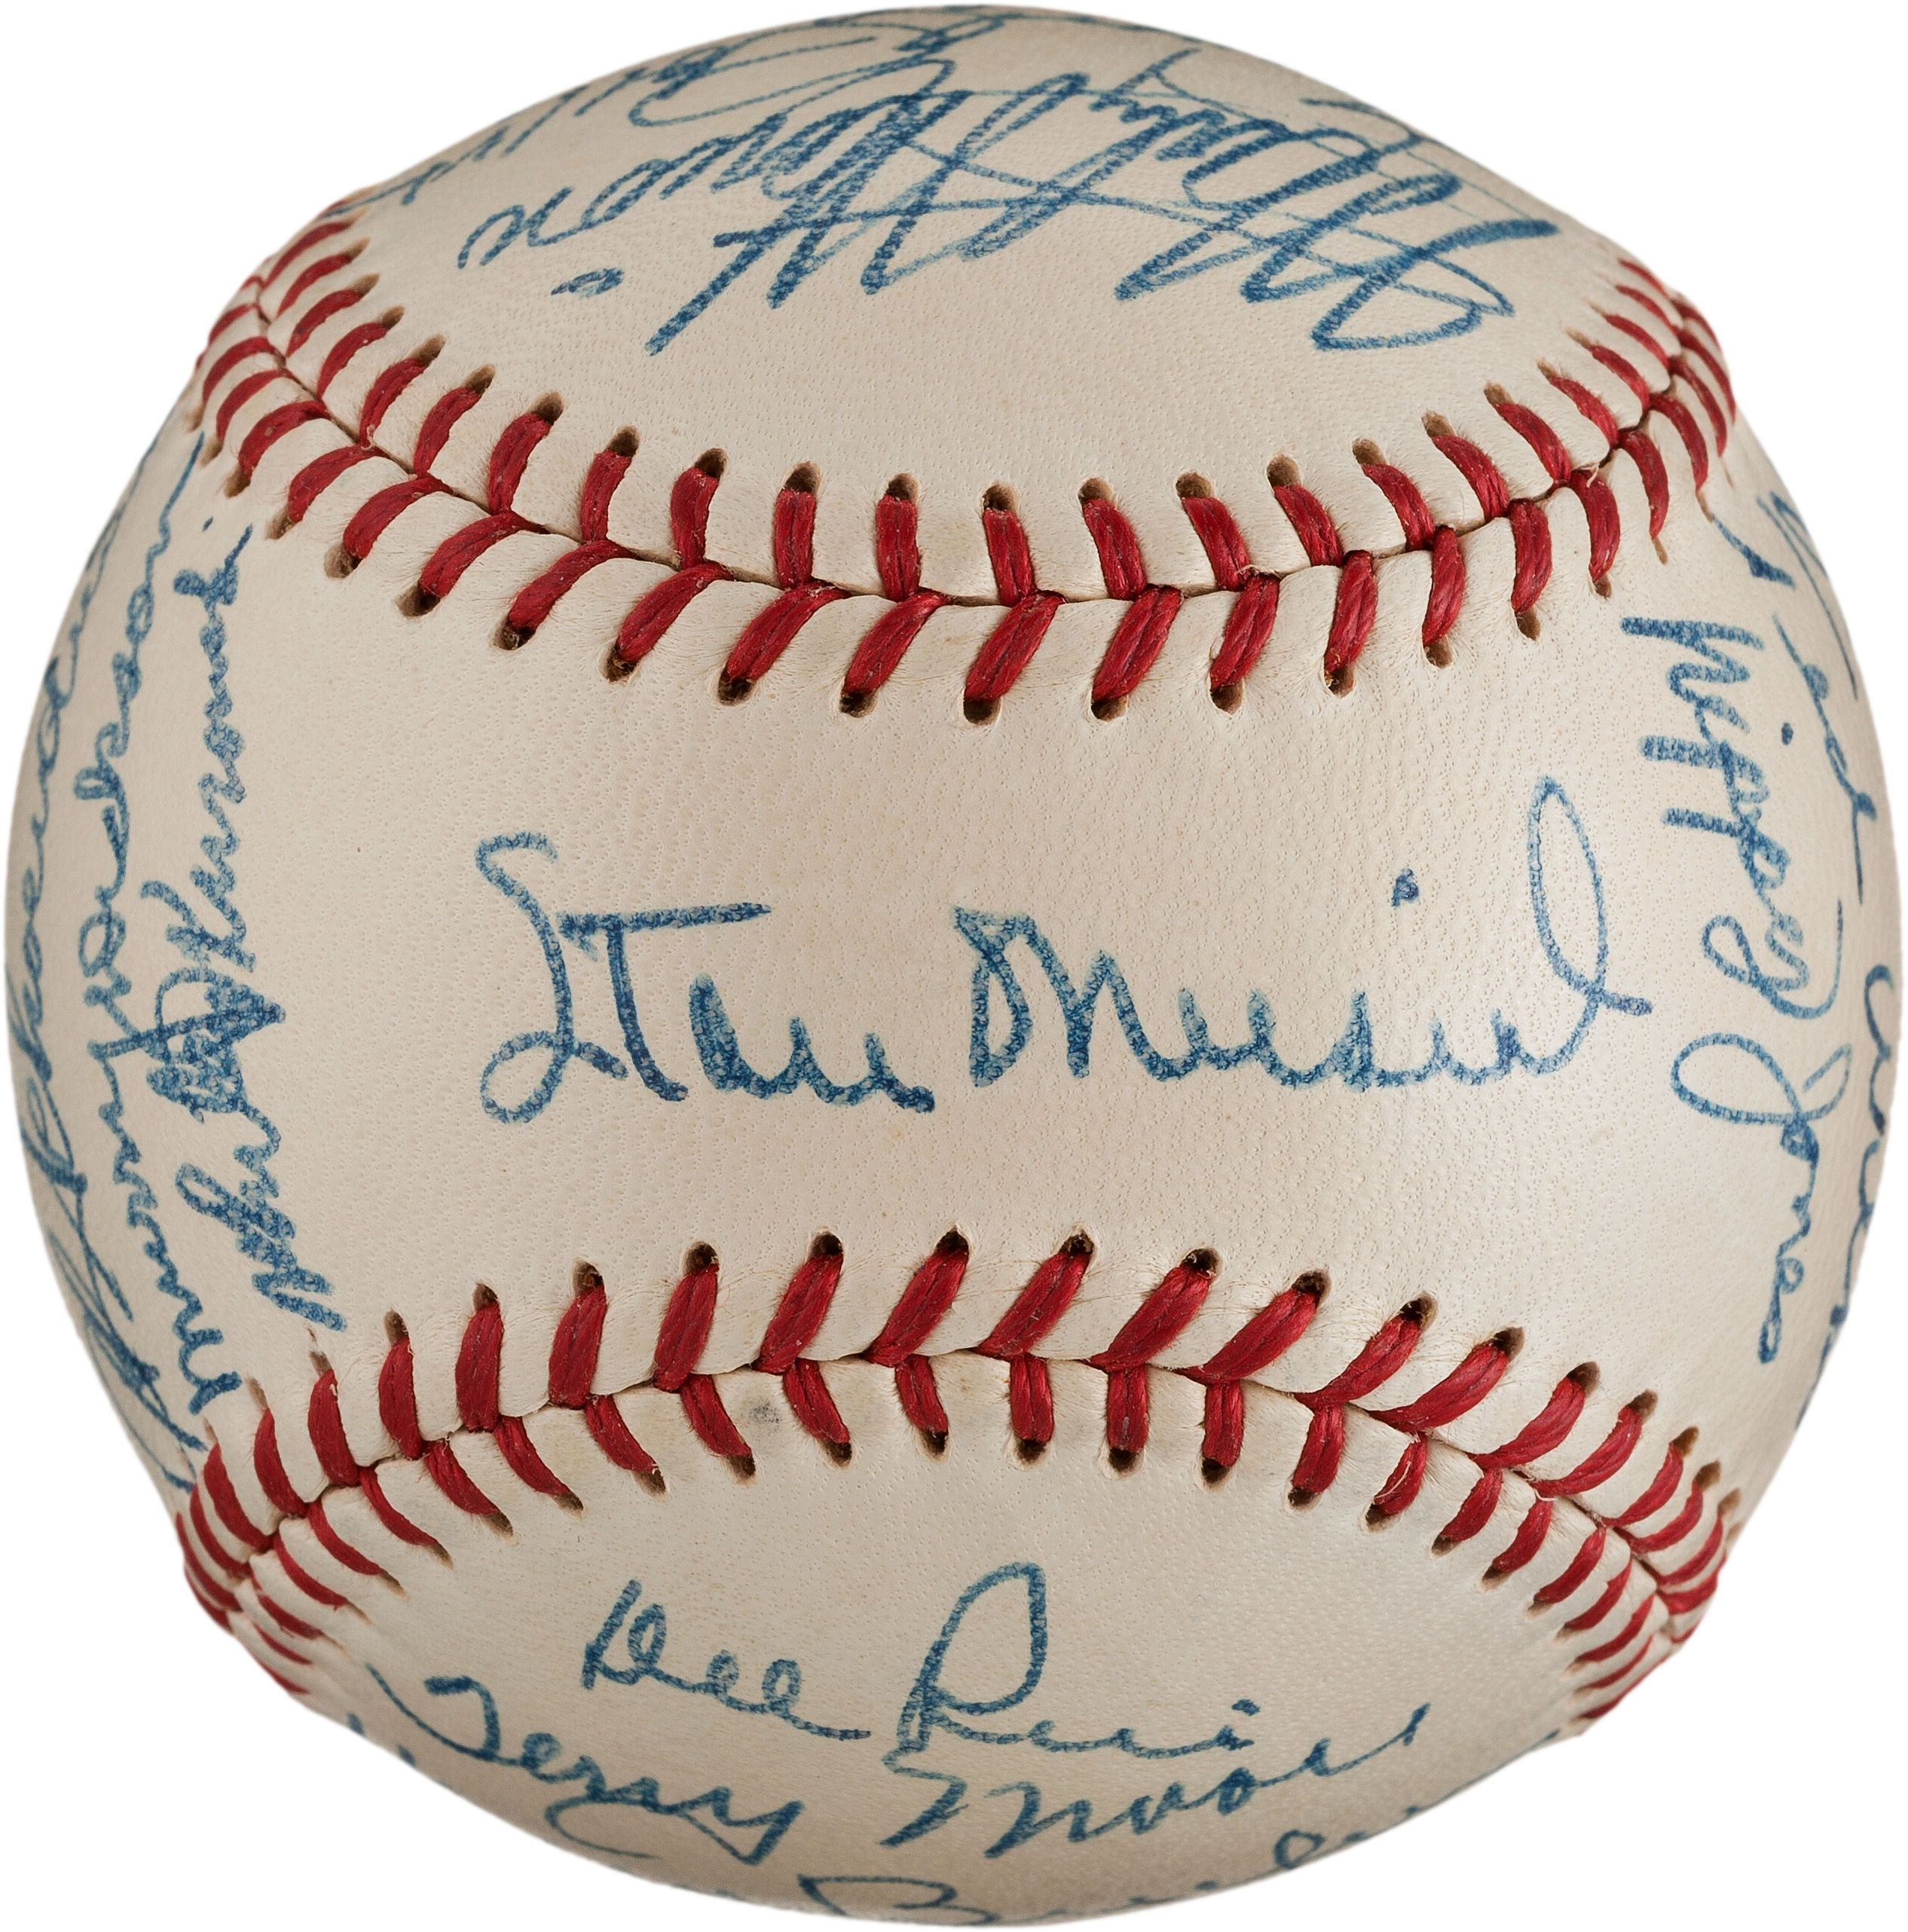 Stan The Man S Mementos On The Auction Block Baseball Signed By Members Of The 1948 St Louis Cardinals B Stan Musial Baseball Signs National Baseball League